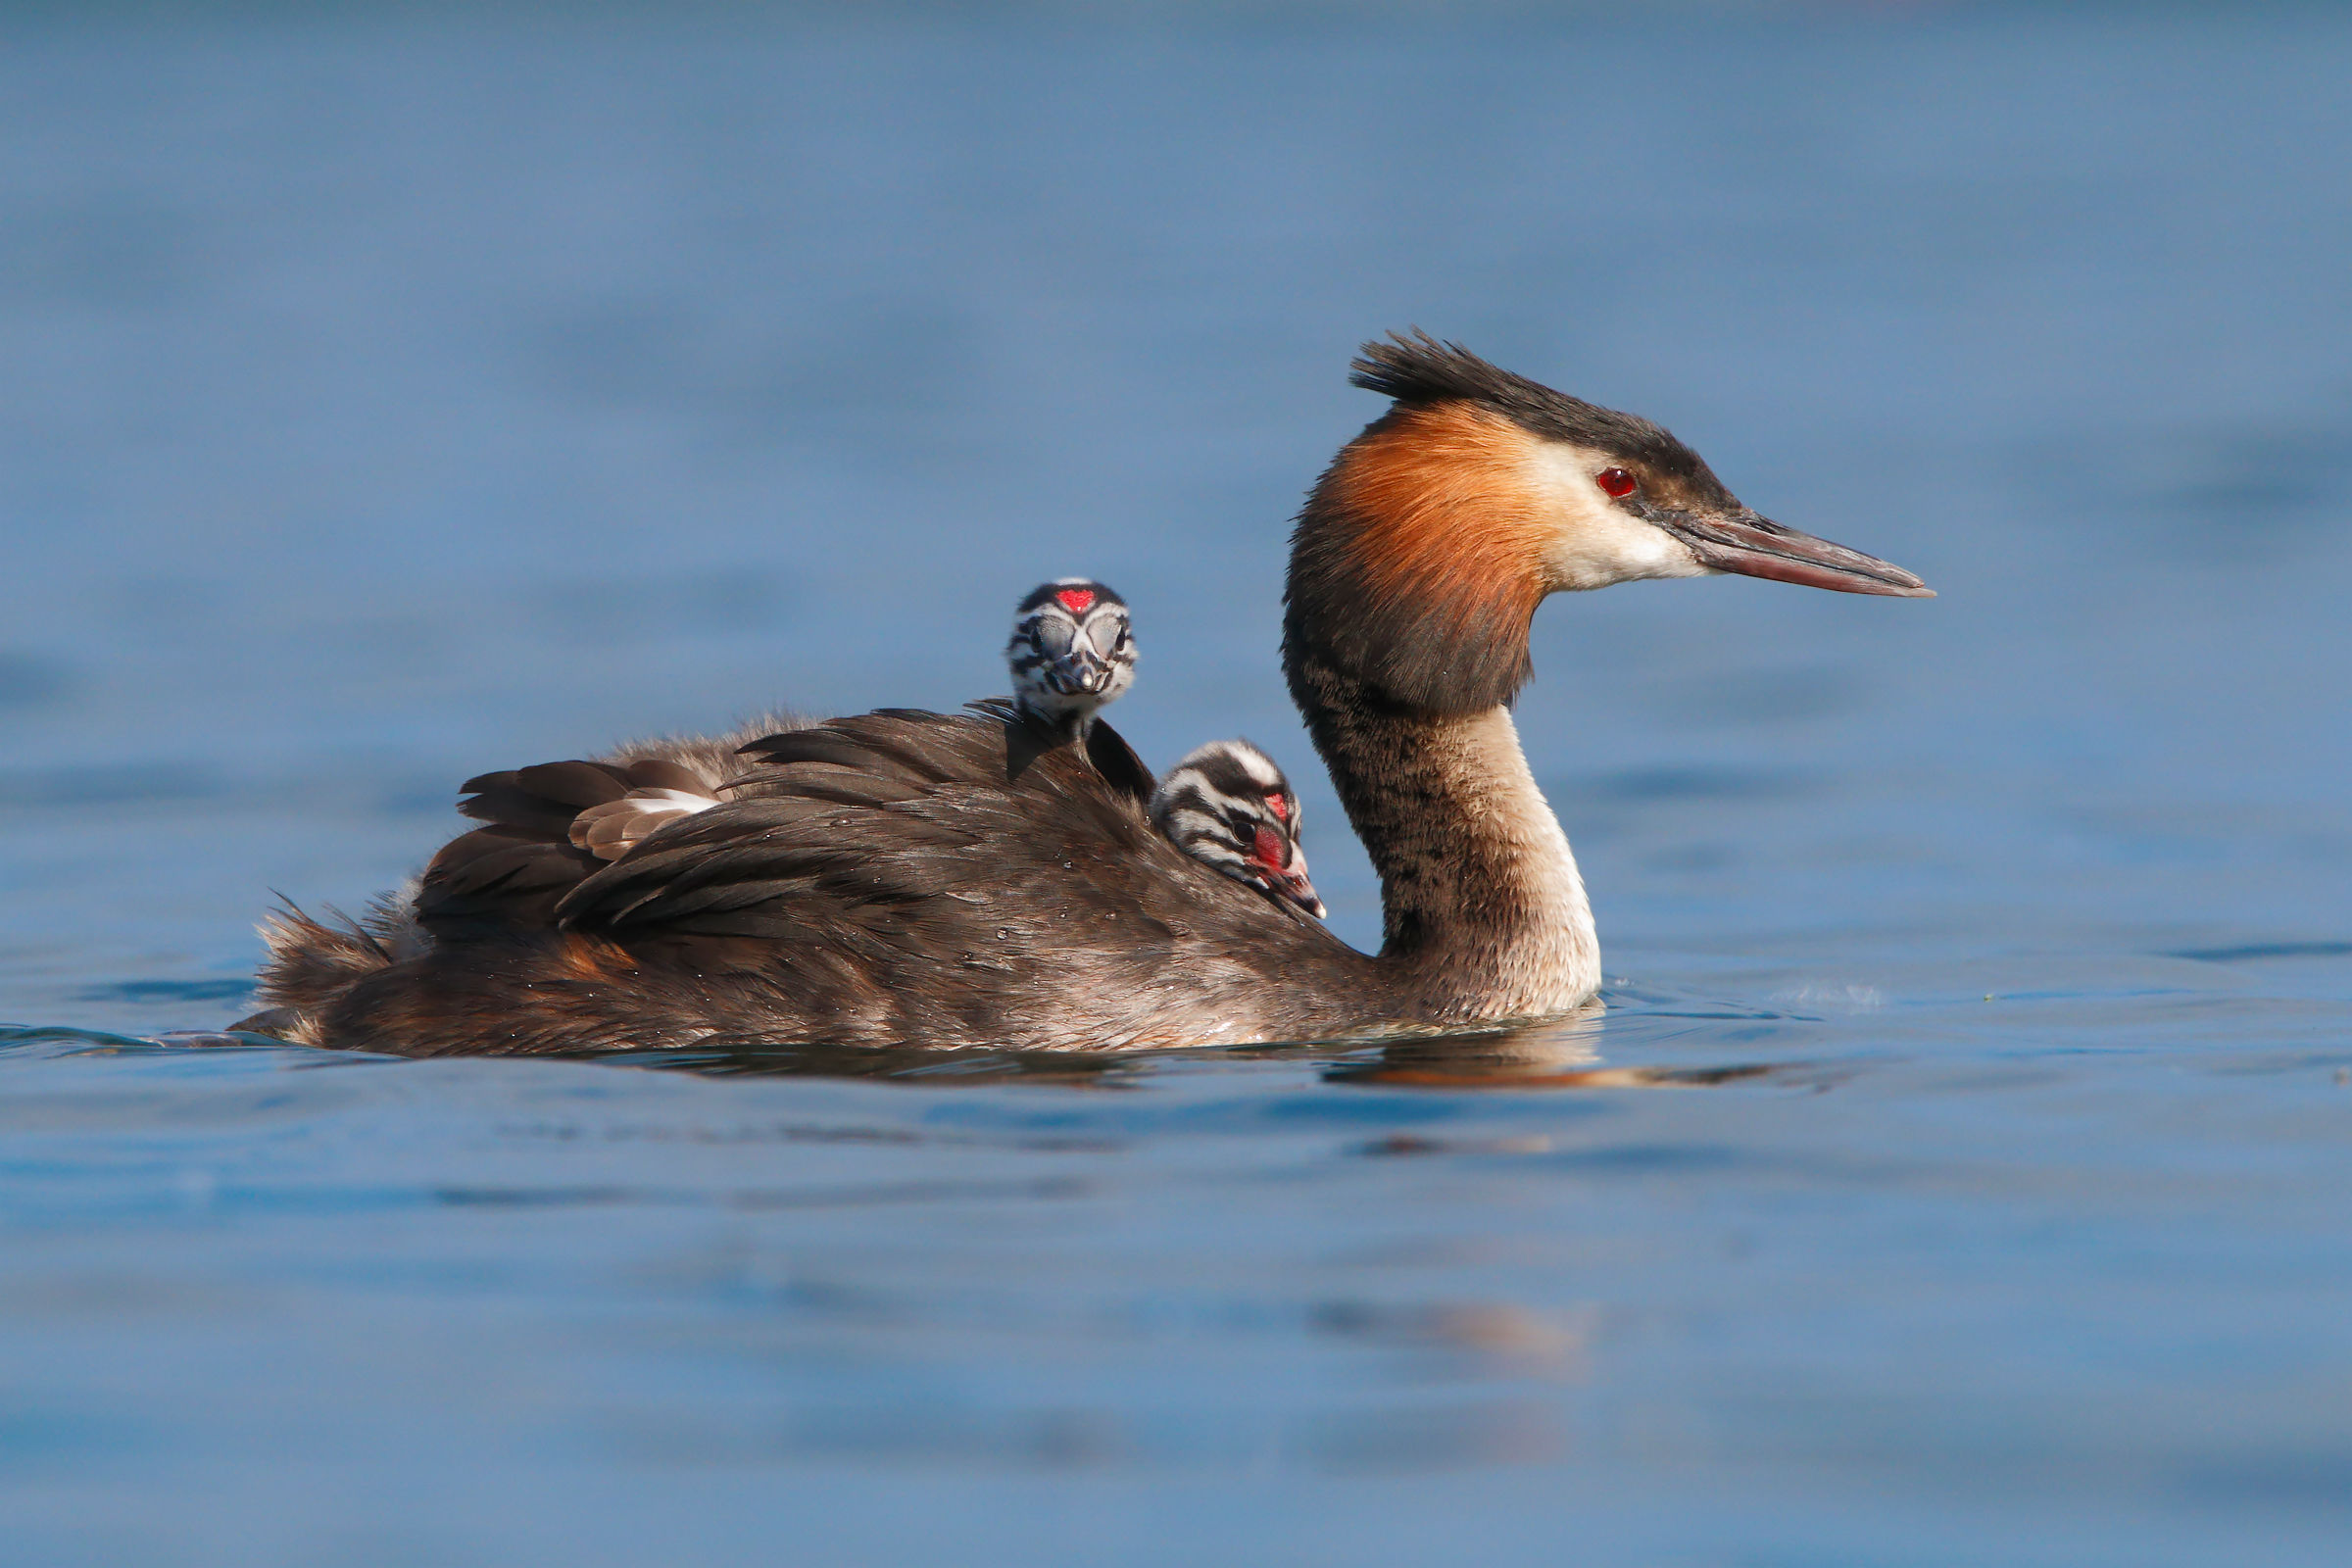 Grebe with children on board...